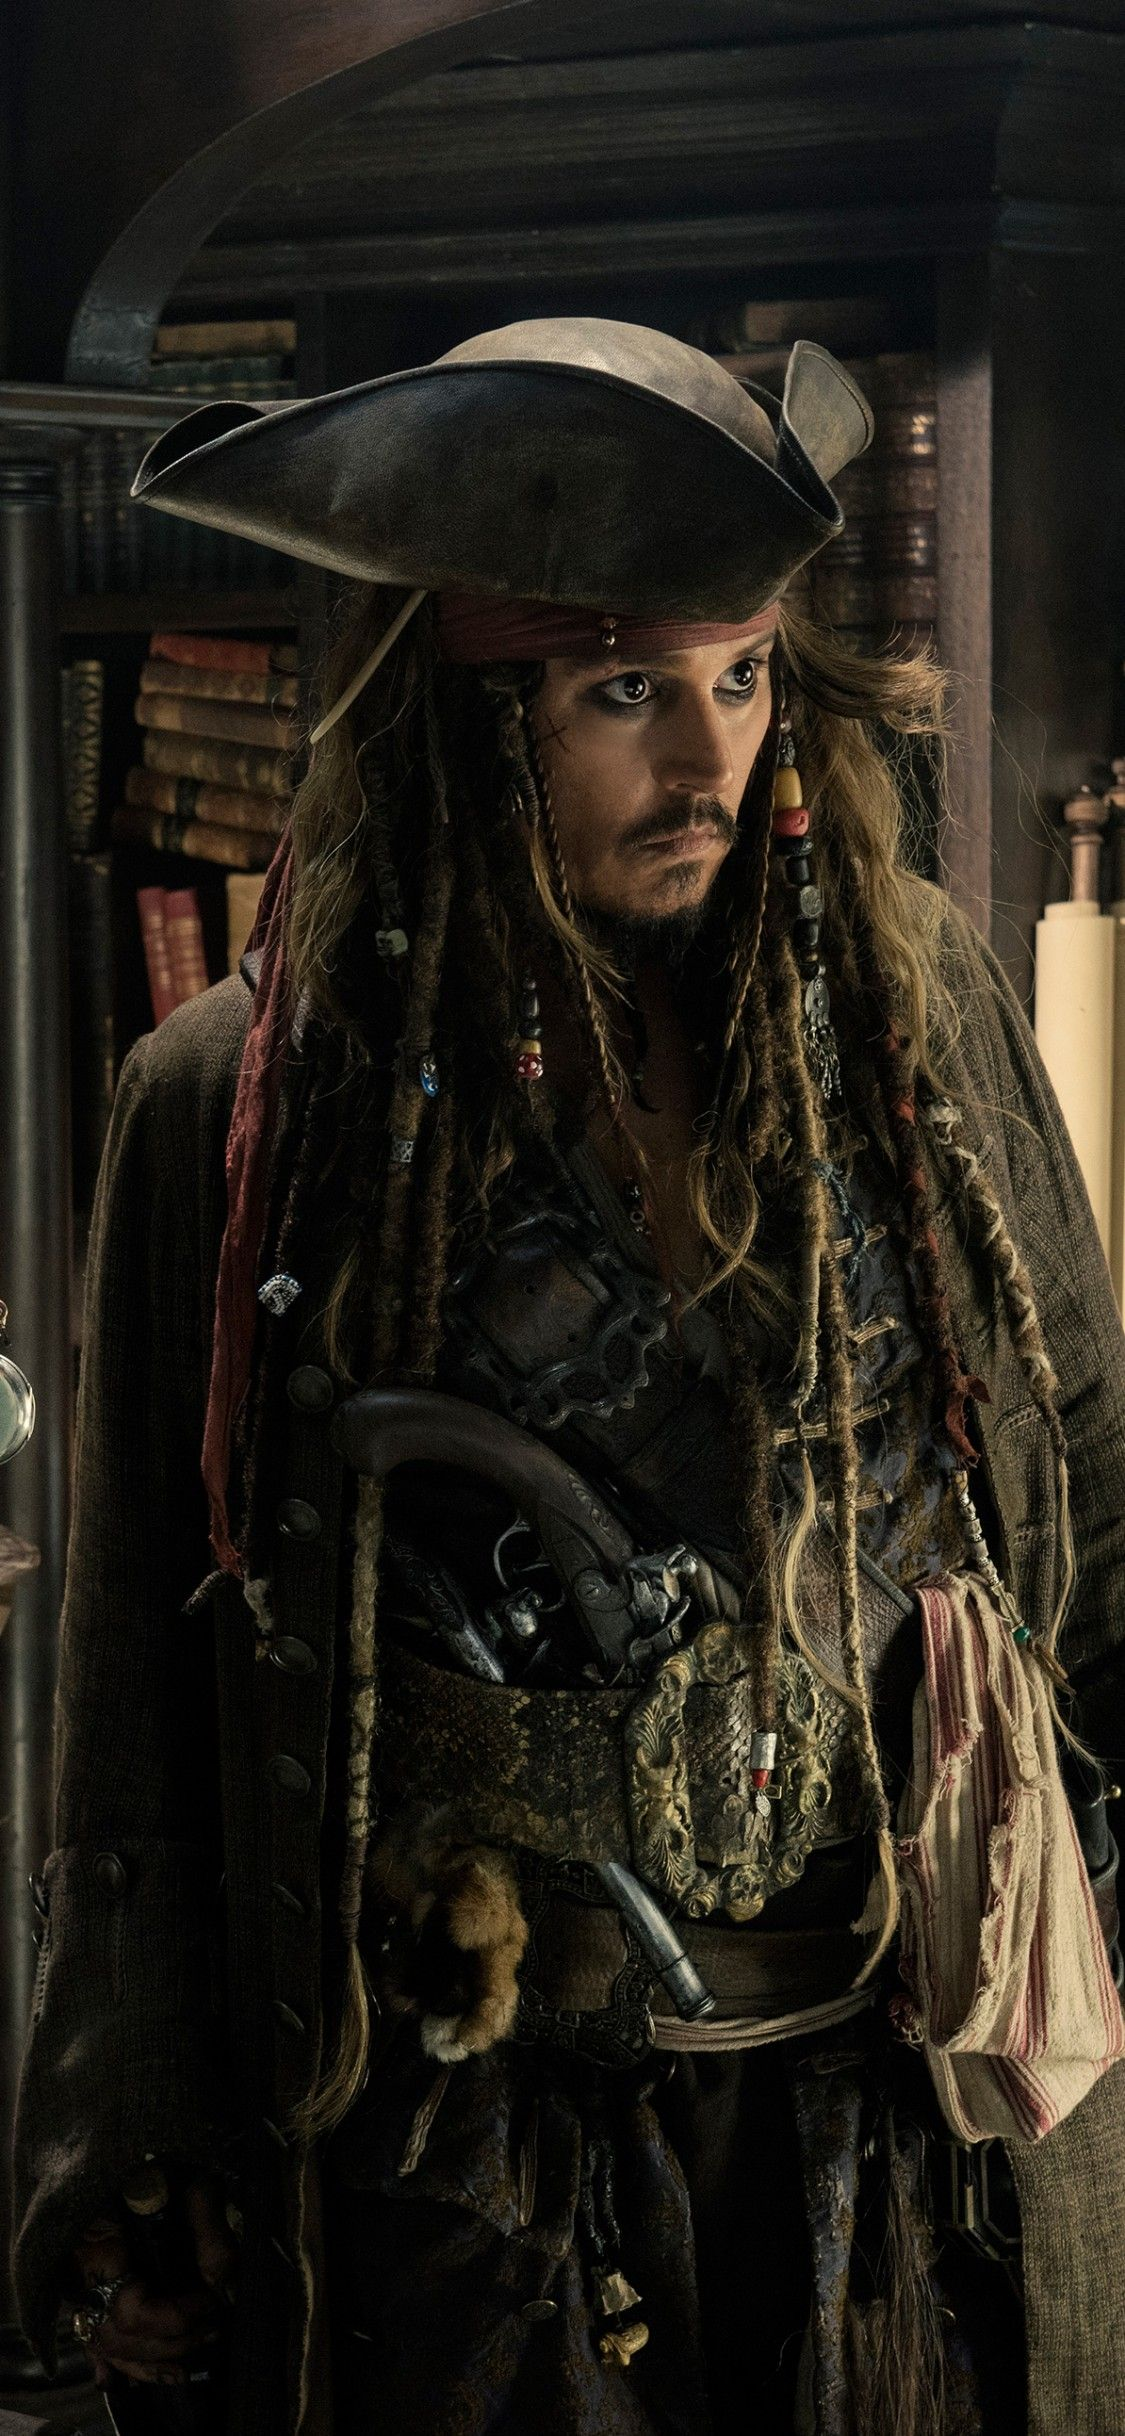 Jack Sparrow iPhone Wallpapers - Top